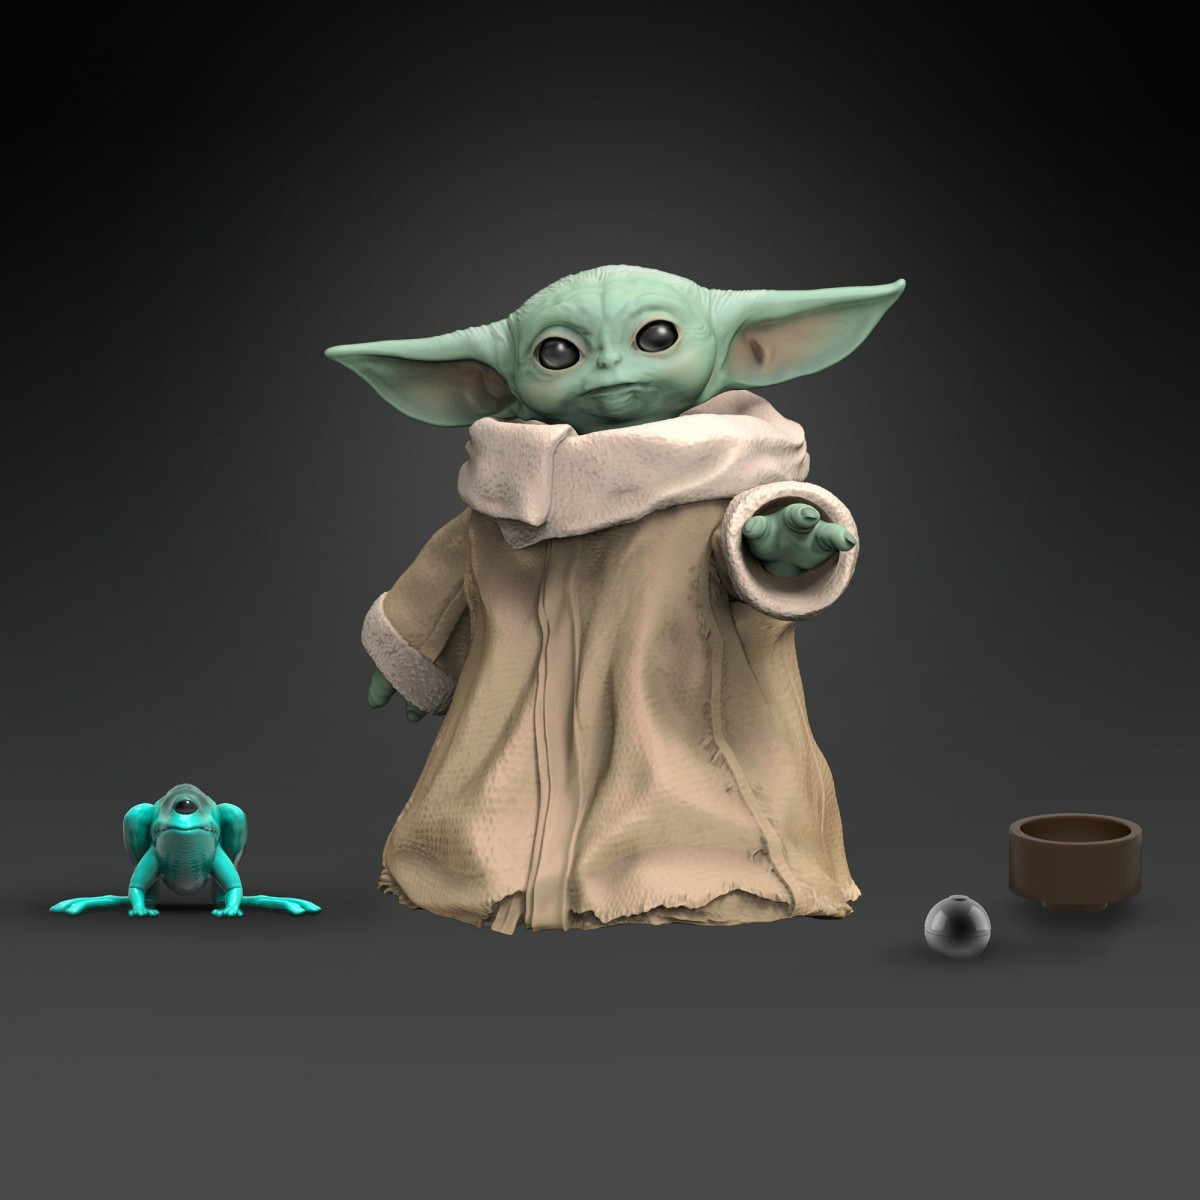 Baby Yoda Star Wars action figures unveiled by Hasbro